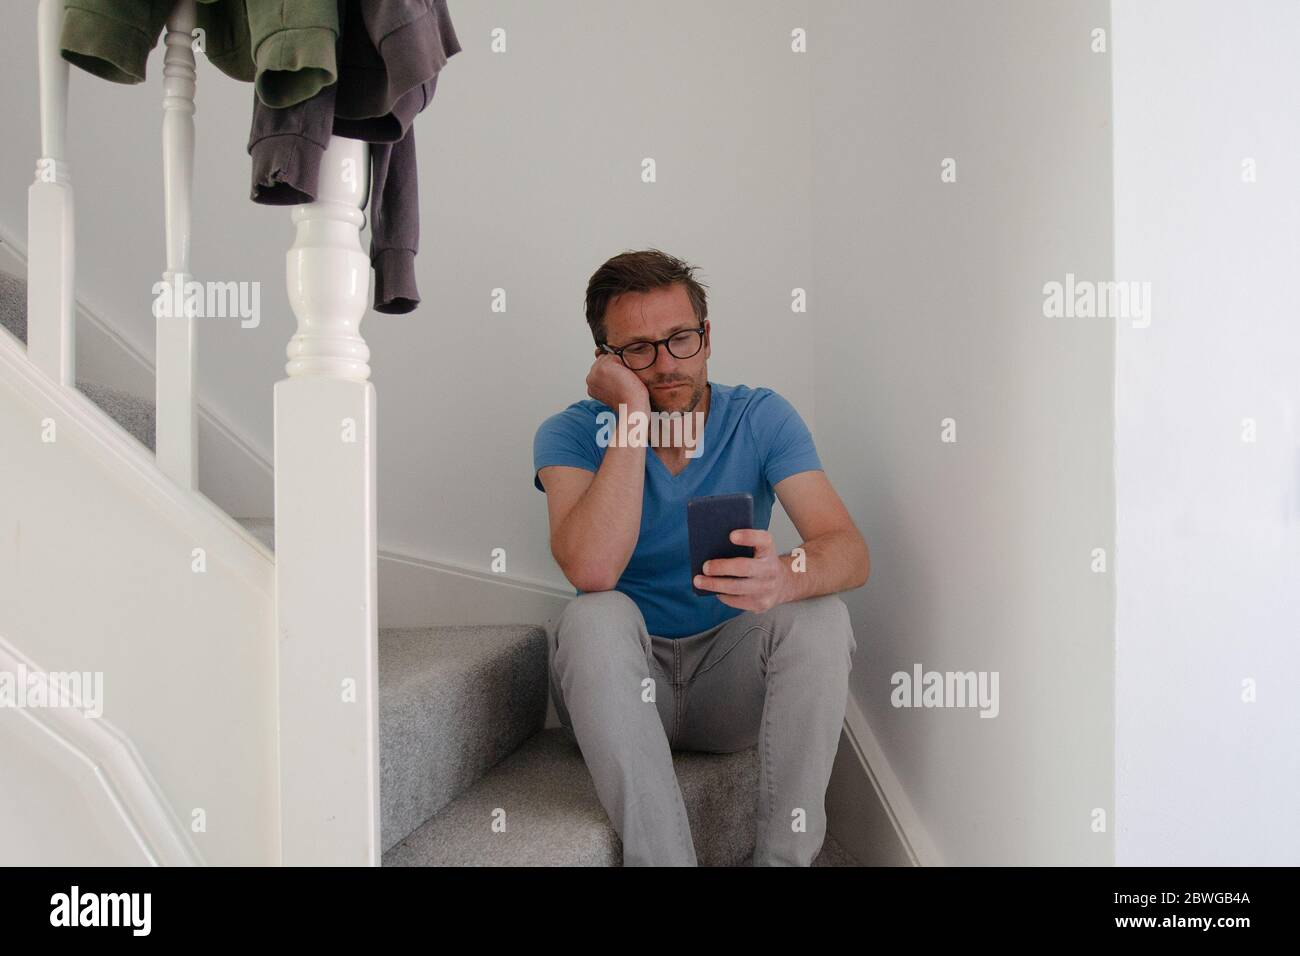 Man struggling with depression sitting on stairs Stock Photo